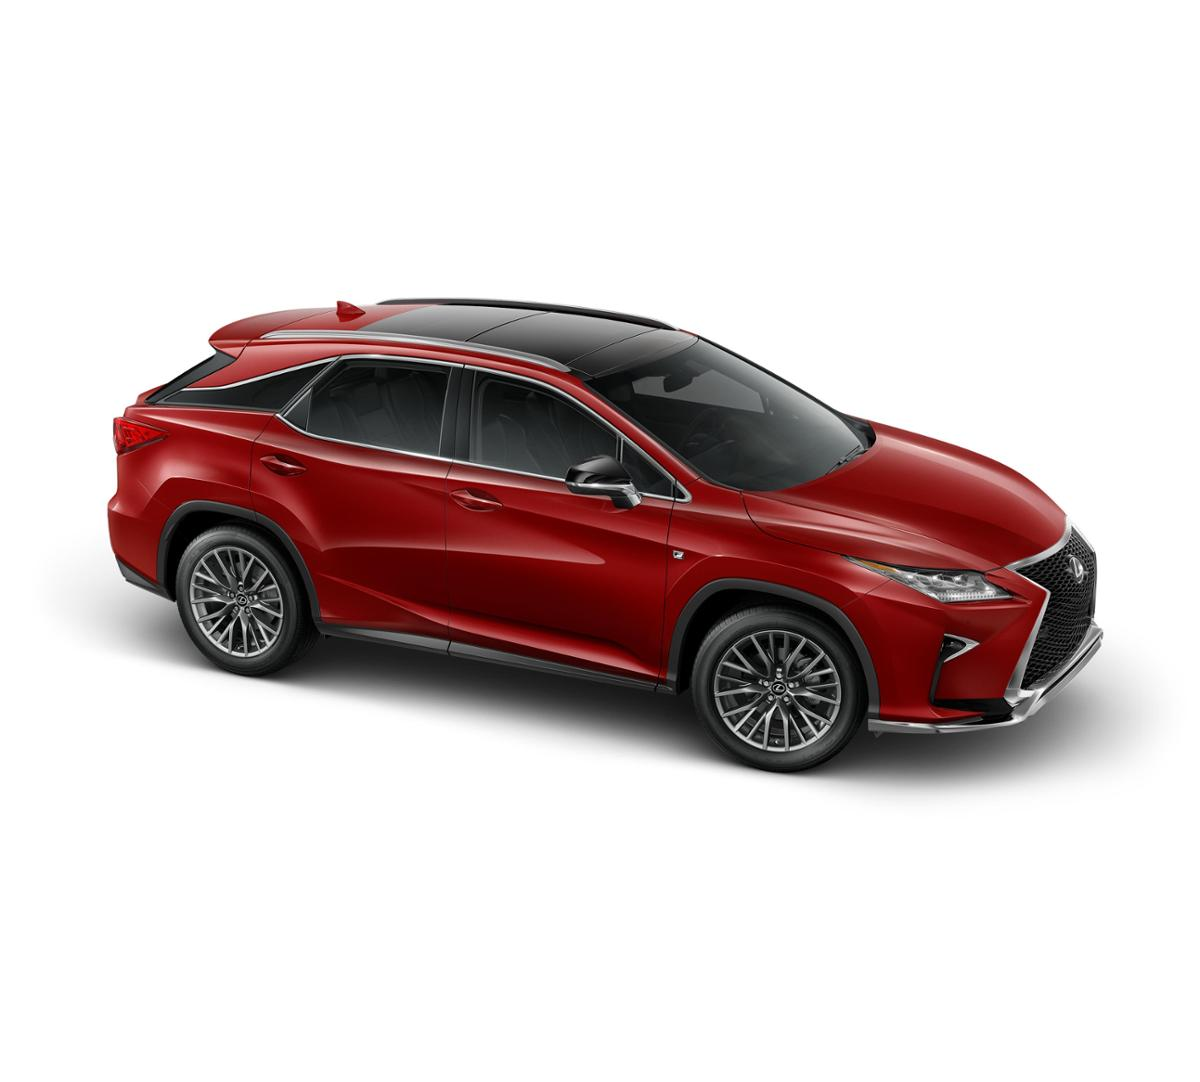 Lexus Rx 350 Lease: 2019 Lexus RX 350 For Sale In San Juan